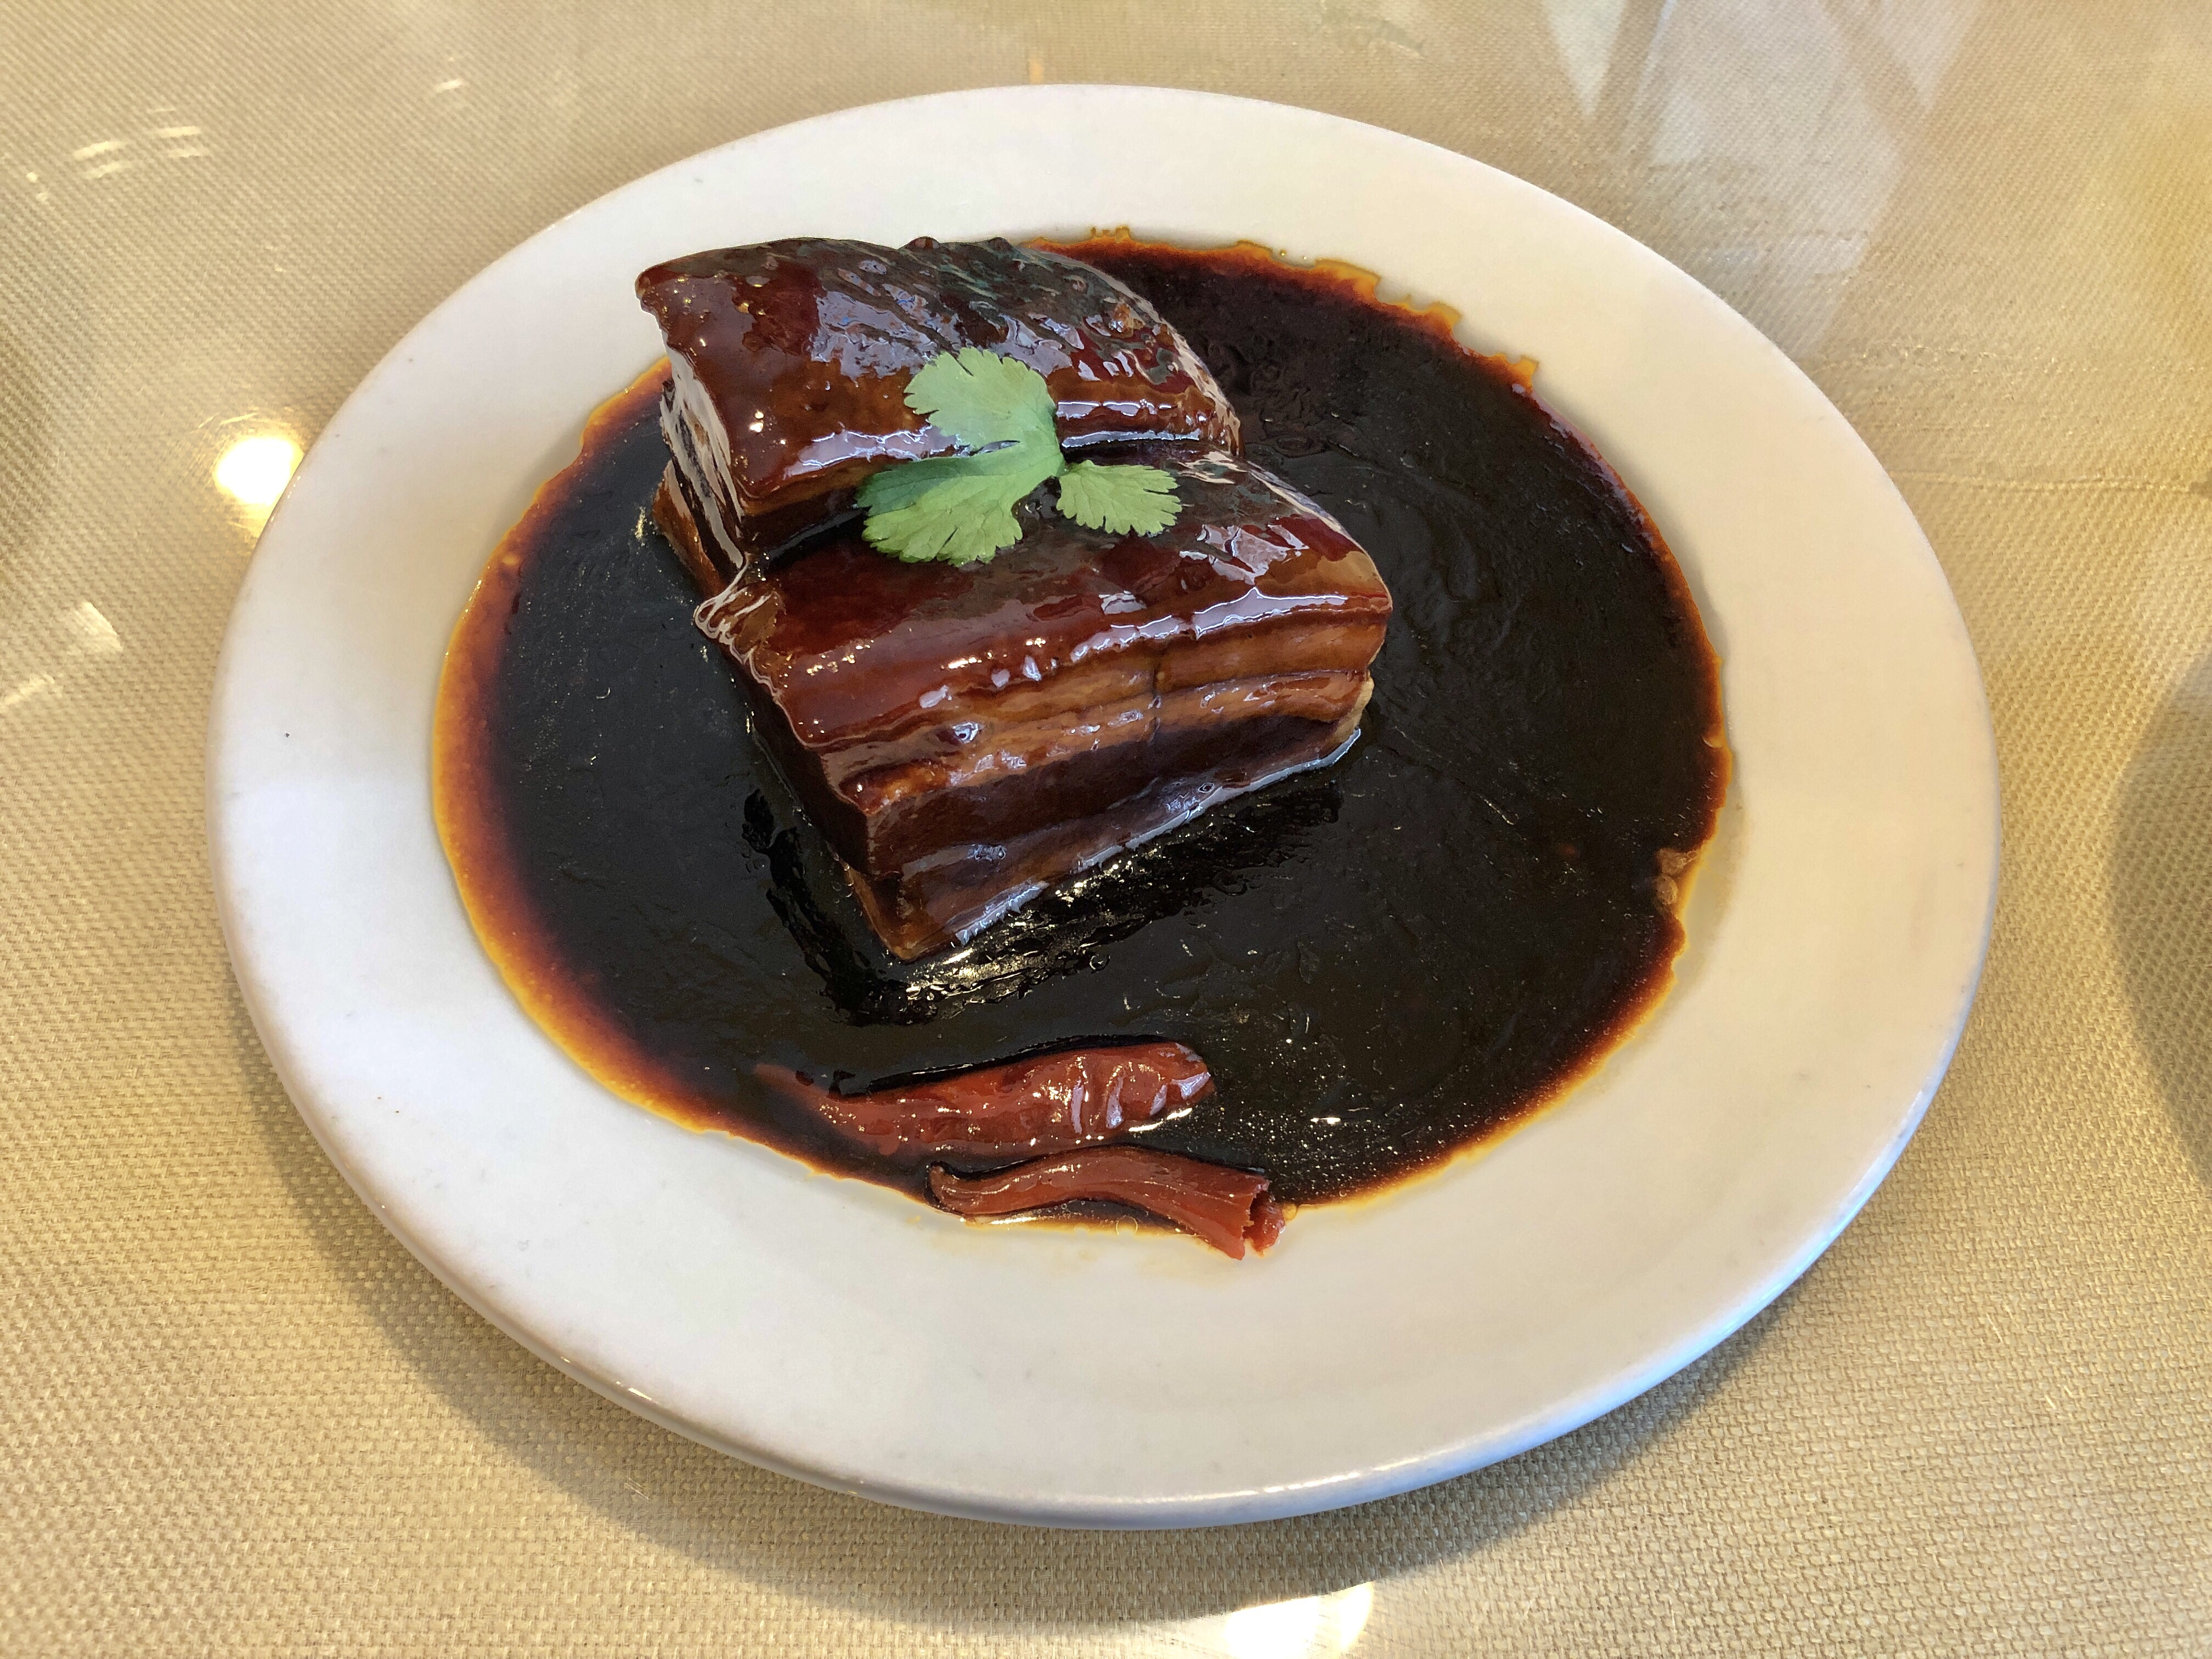 Dong Po Pork, braised pork belly in an ethereal brown sauce at Masterpiece in Duluth, Georgia